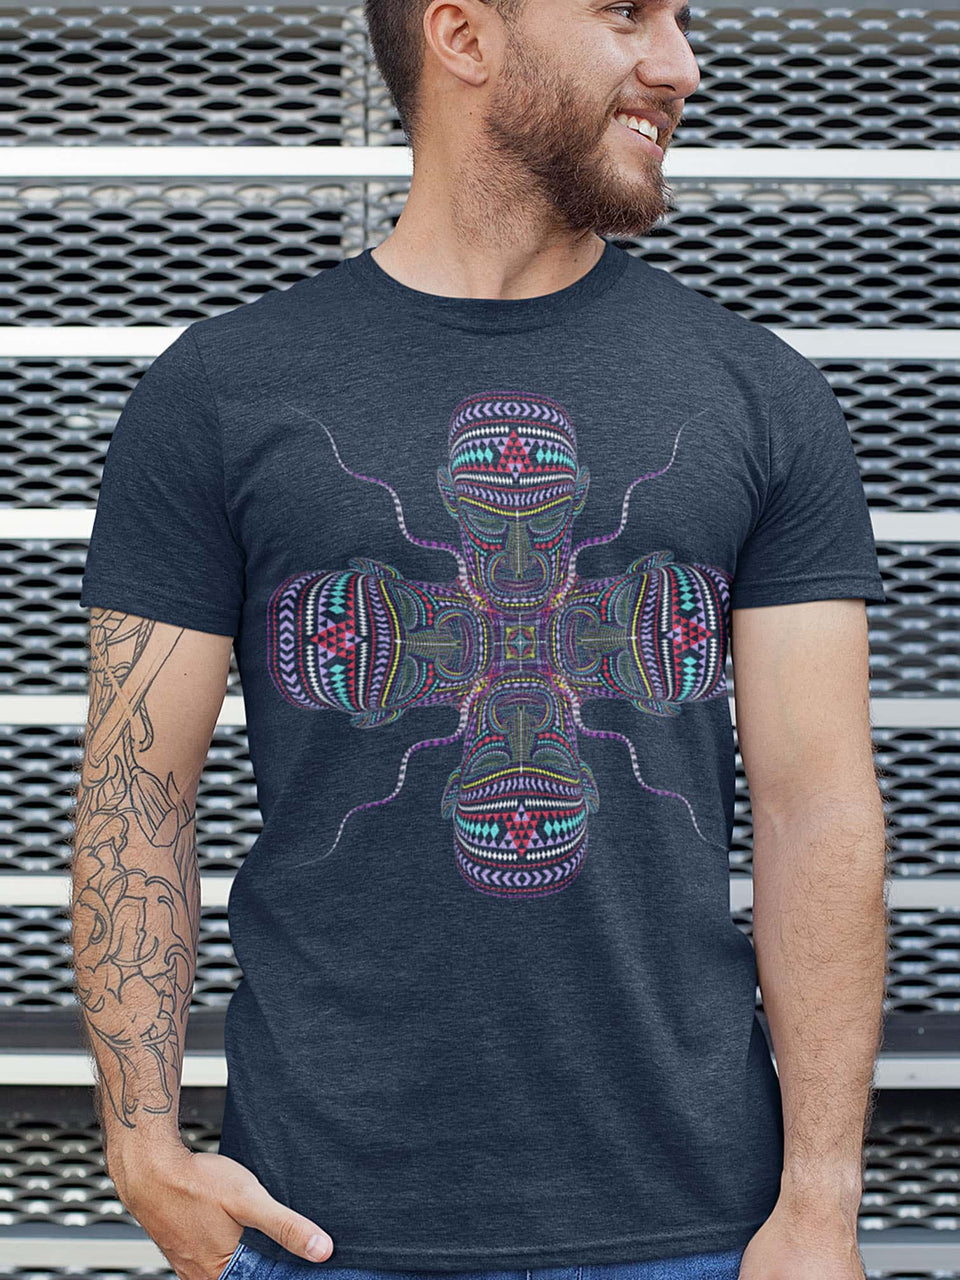 Chango Made To Order Men T-Shirt - Navy Blue